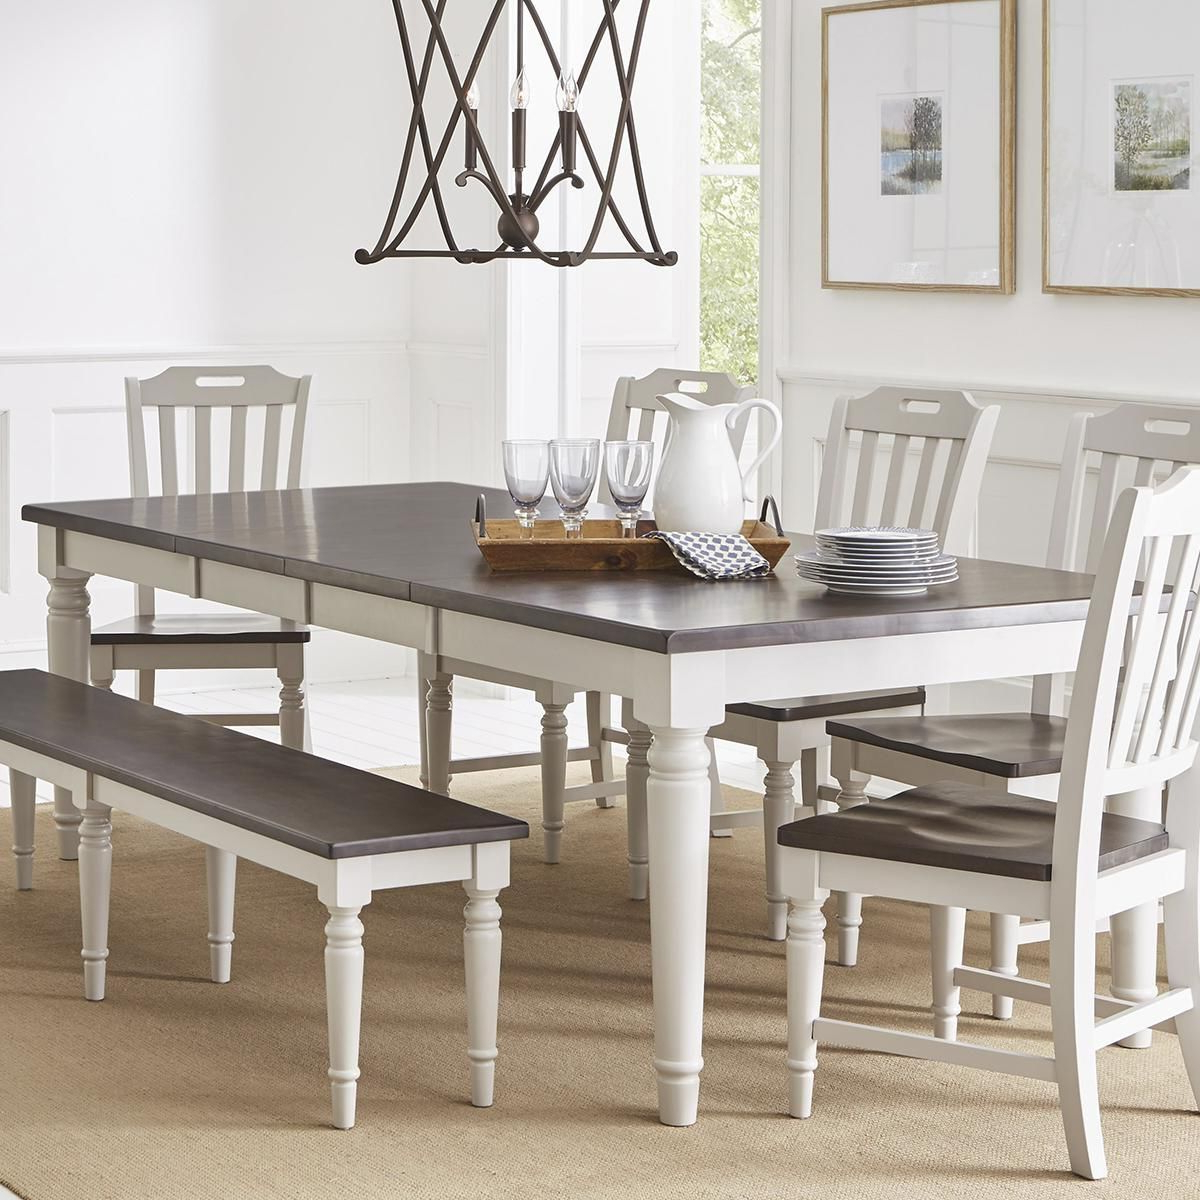 Waltham Orchard Park 6 Piece Dining Set In Dove Gray In Trendy Ingred Extending Dining Tables (View 11 of 25)